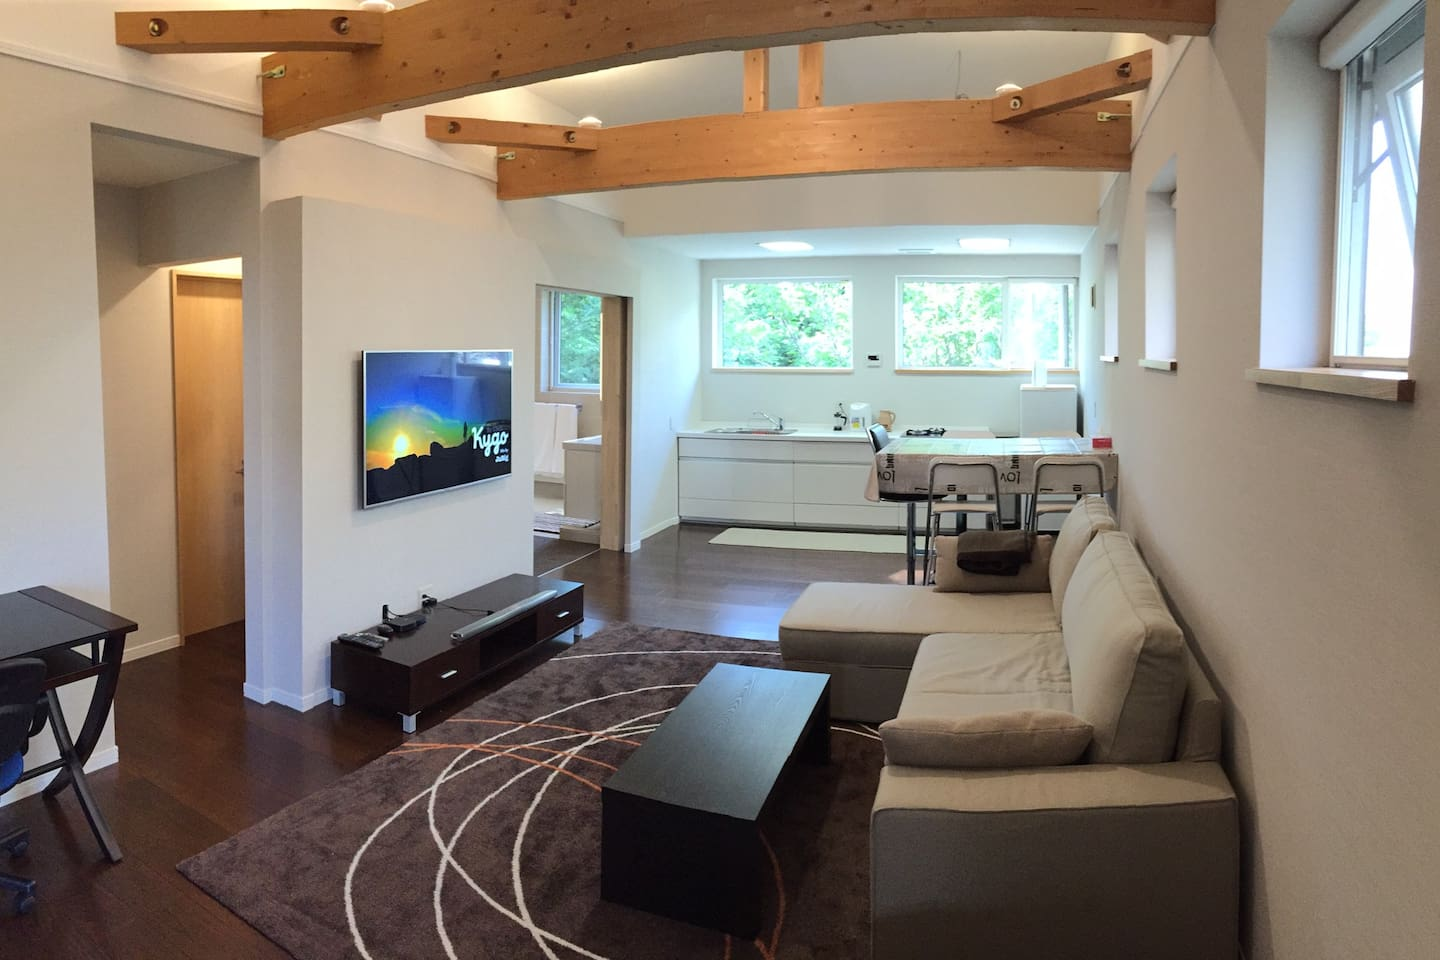 View from entrance looking toward lounge, dining area and kitchen. Sofa folds out to full sized queen bed. Bedroom entrance at far left hand side.